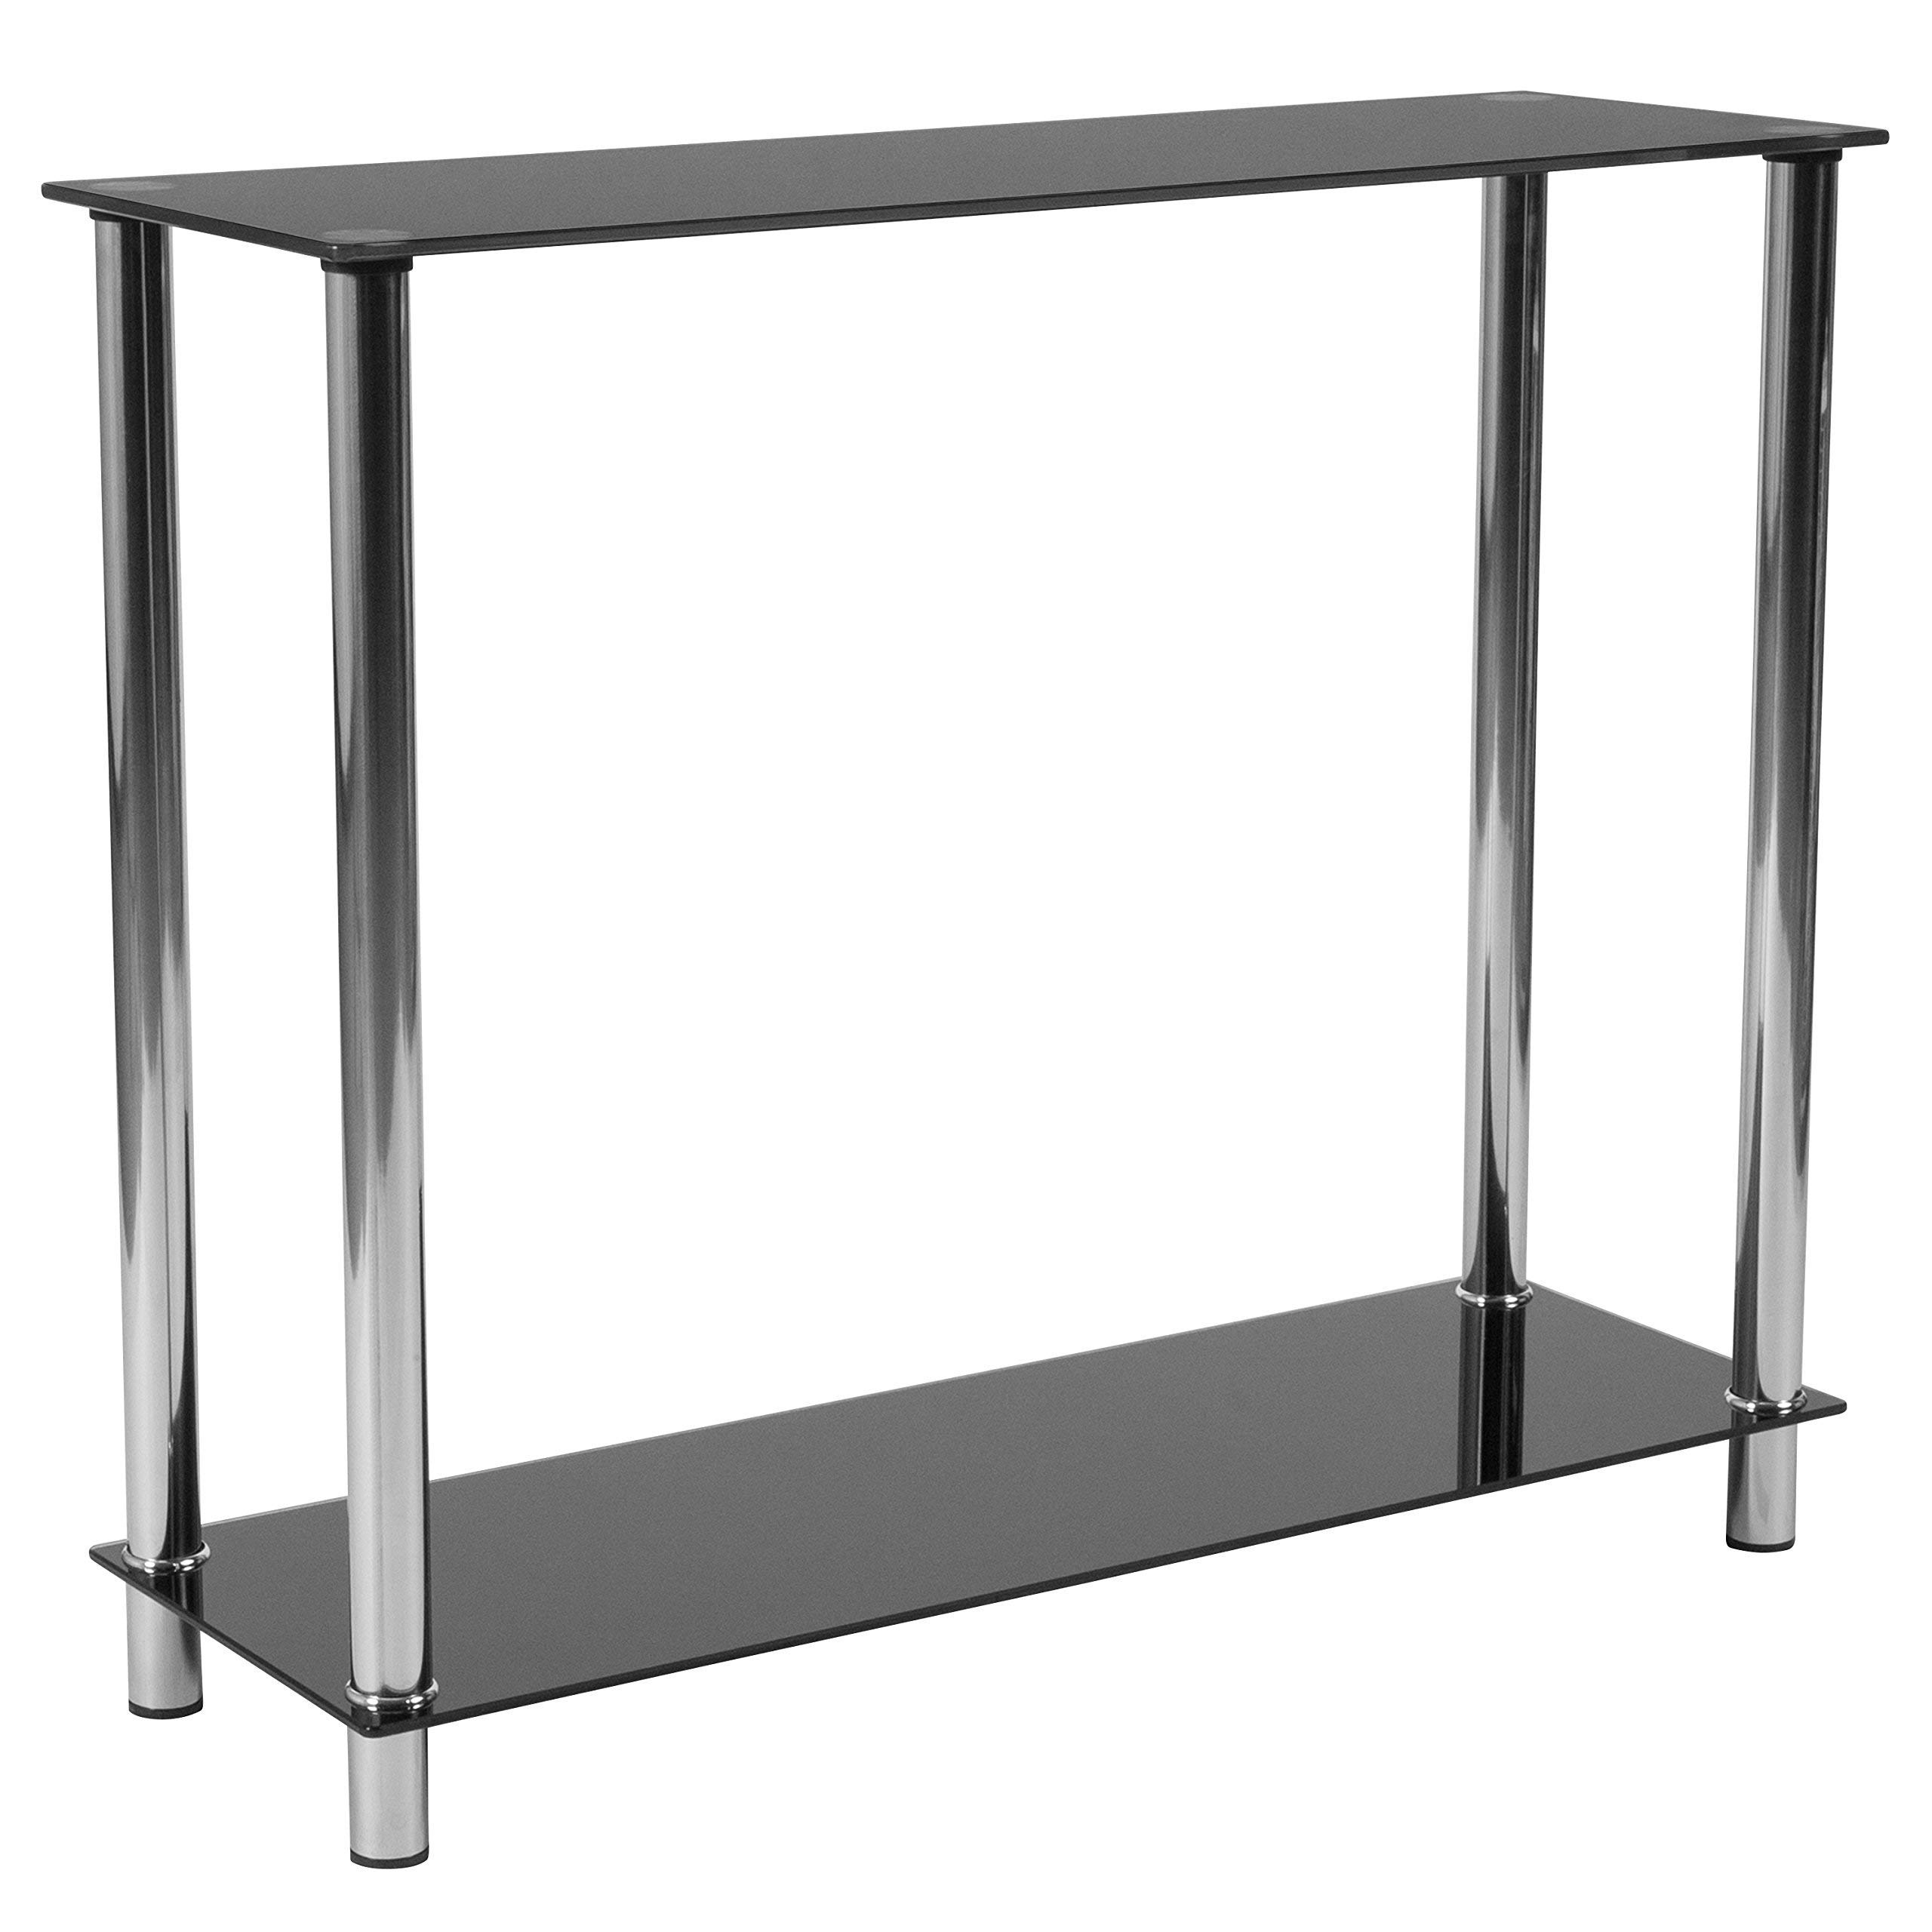 Flash Furniture Riverside Collection Black Glass Console Table with Shelves and Stainless Steel Frame by Flash Furniture